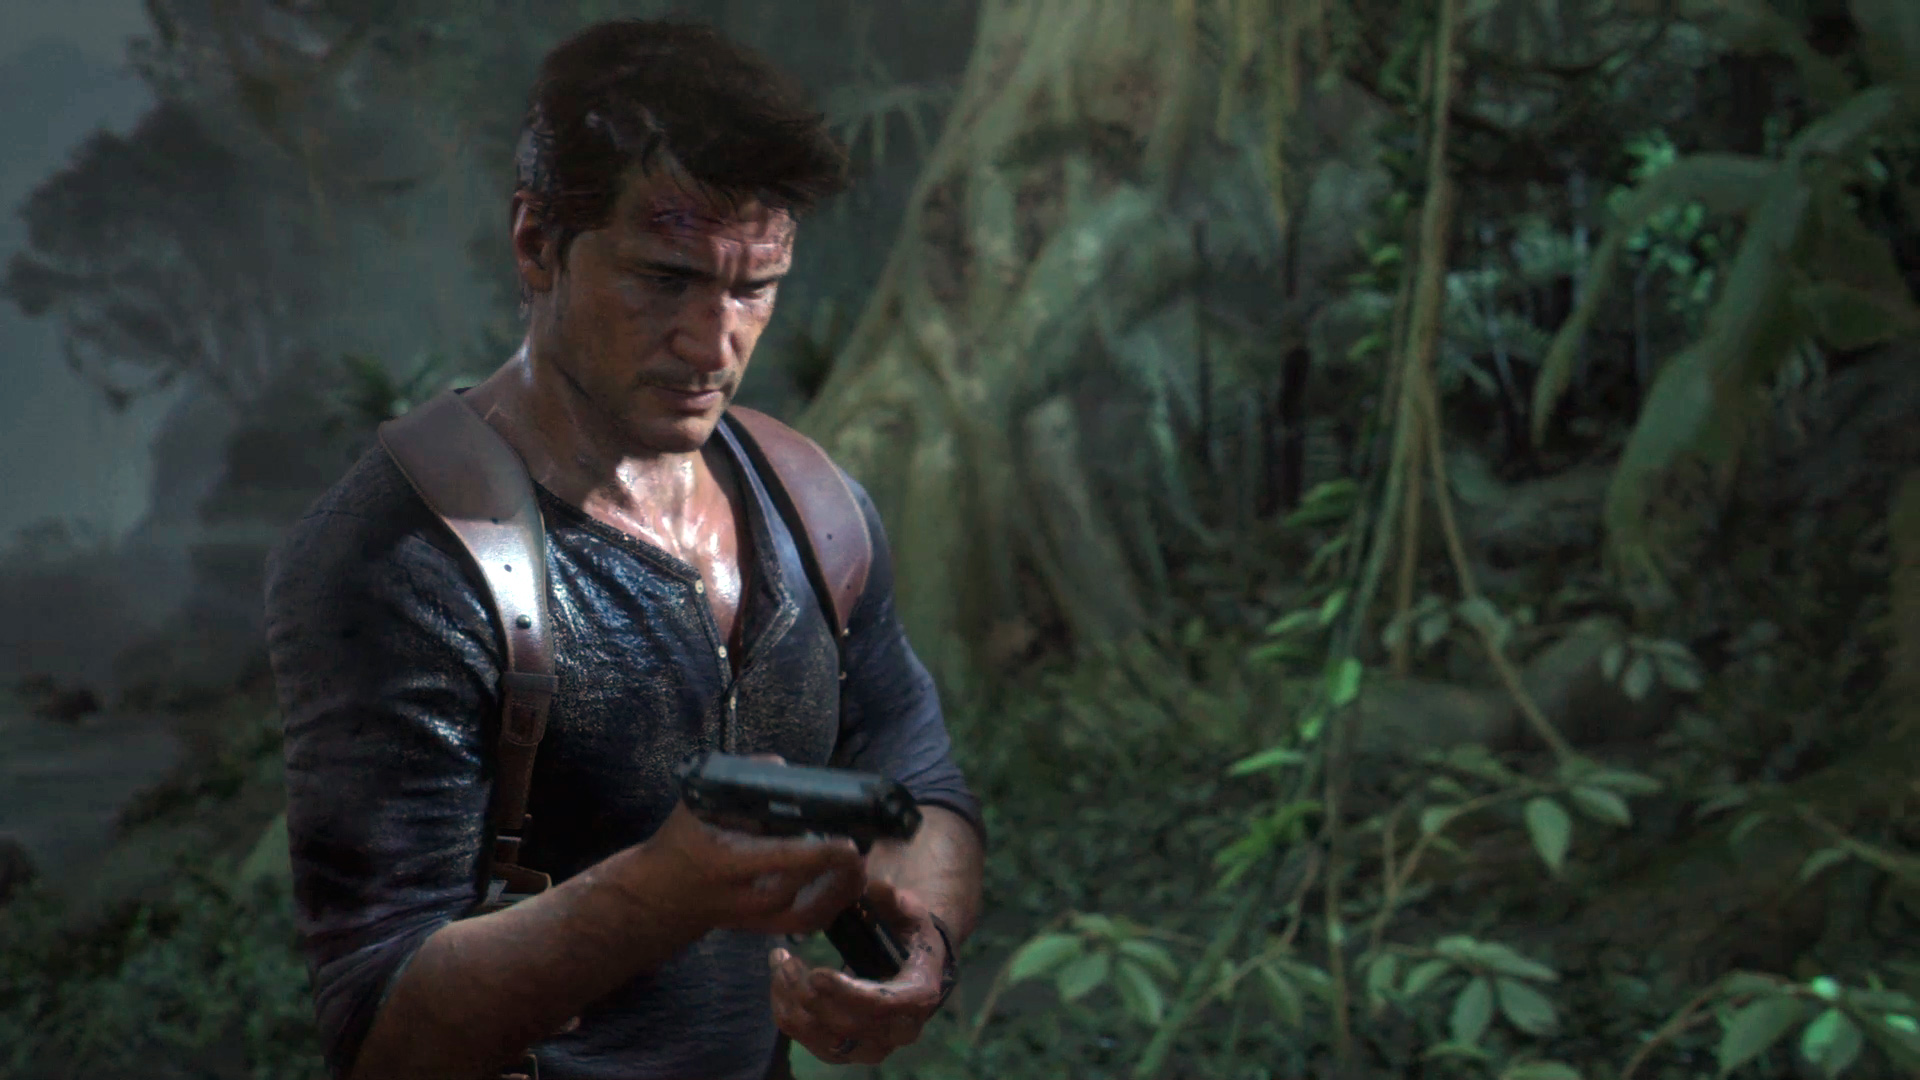 News PS4 Exclusive Uncharted 4 To Feature AI Within Multiplayer The Games Cabin